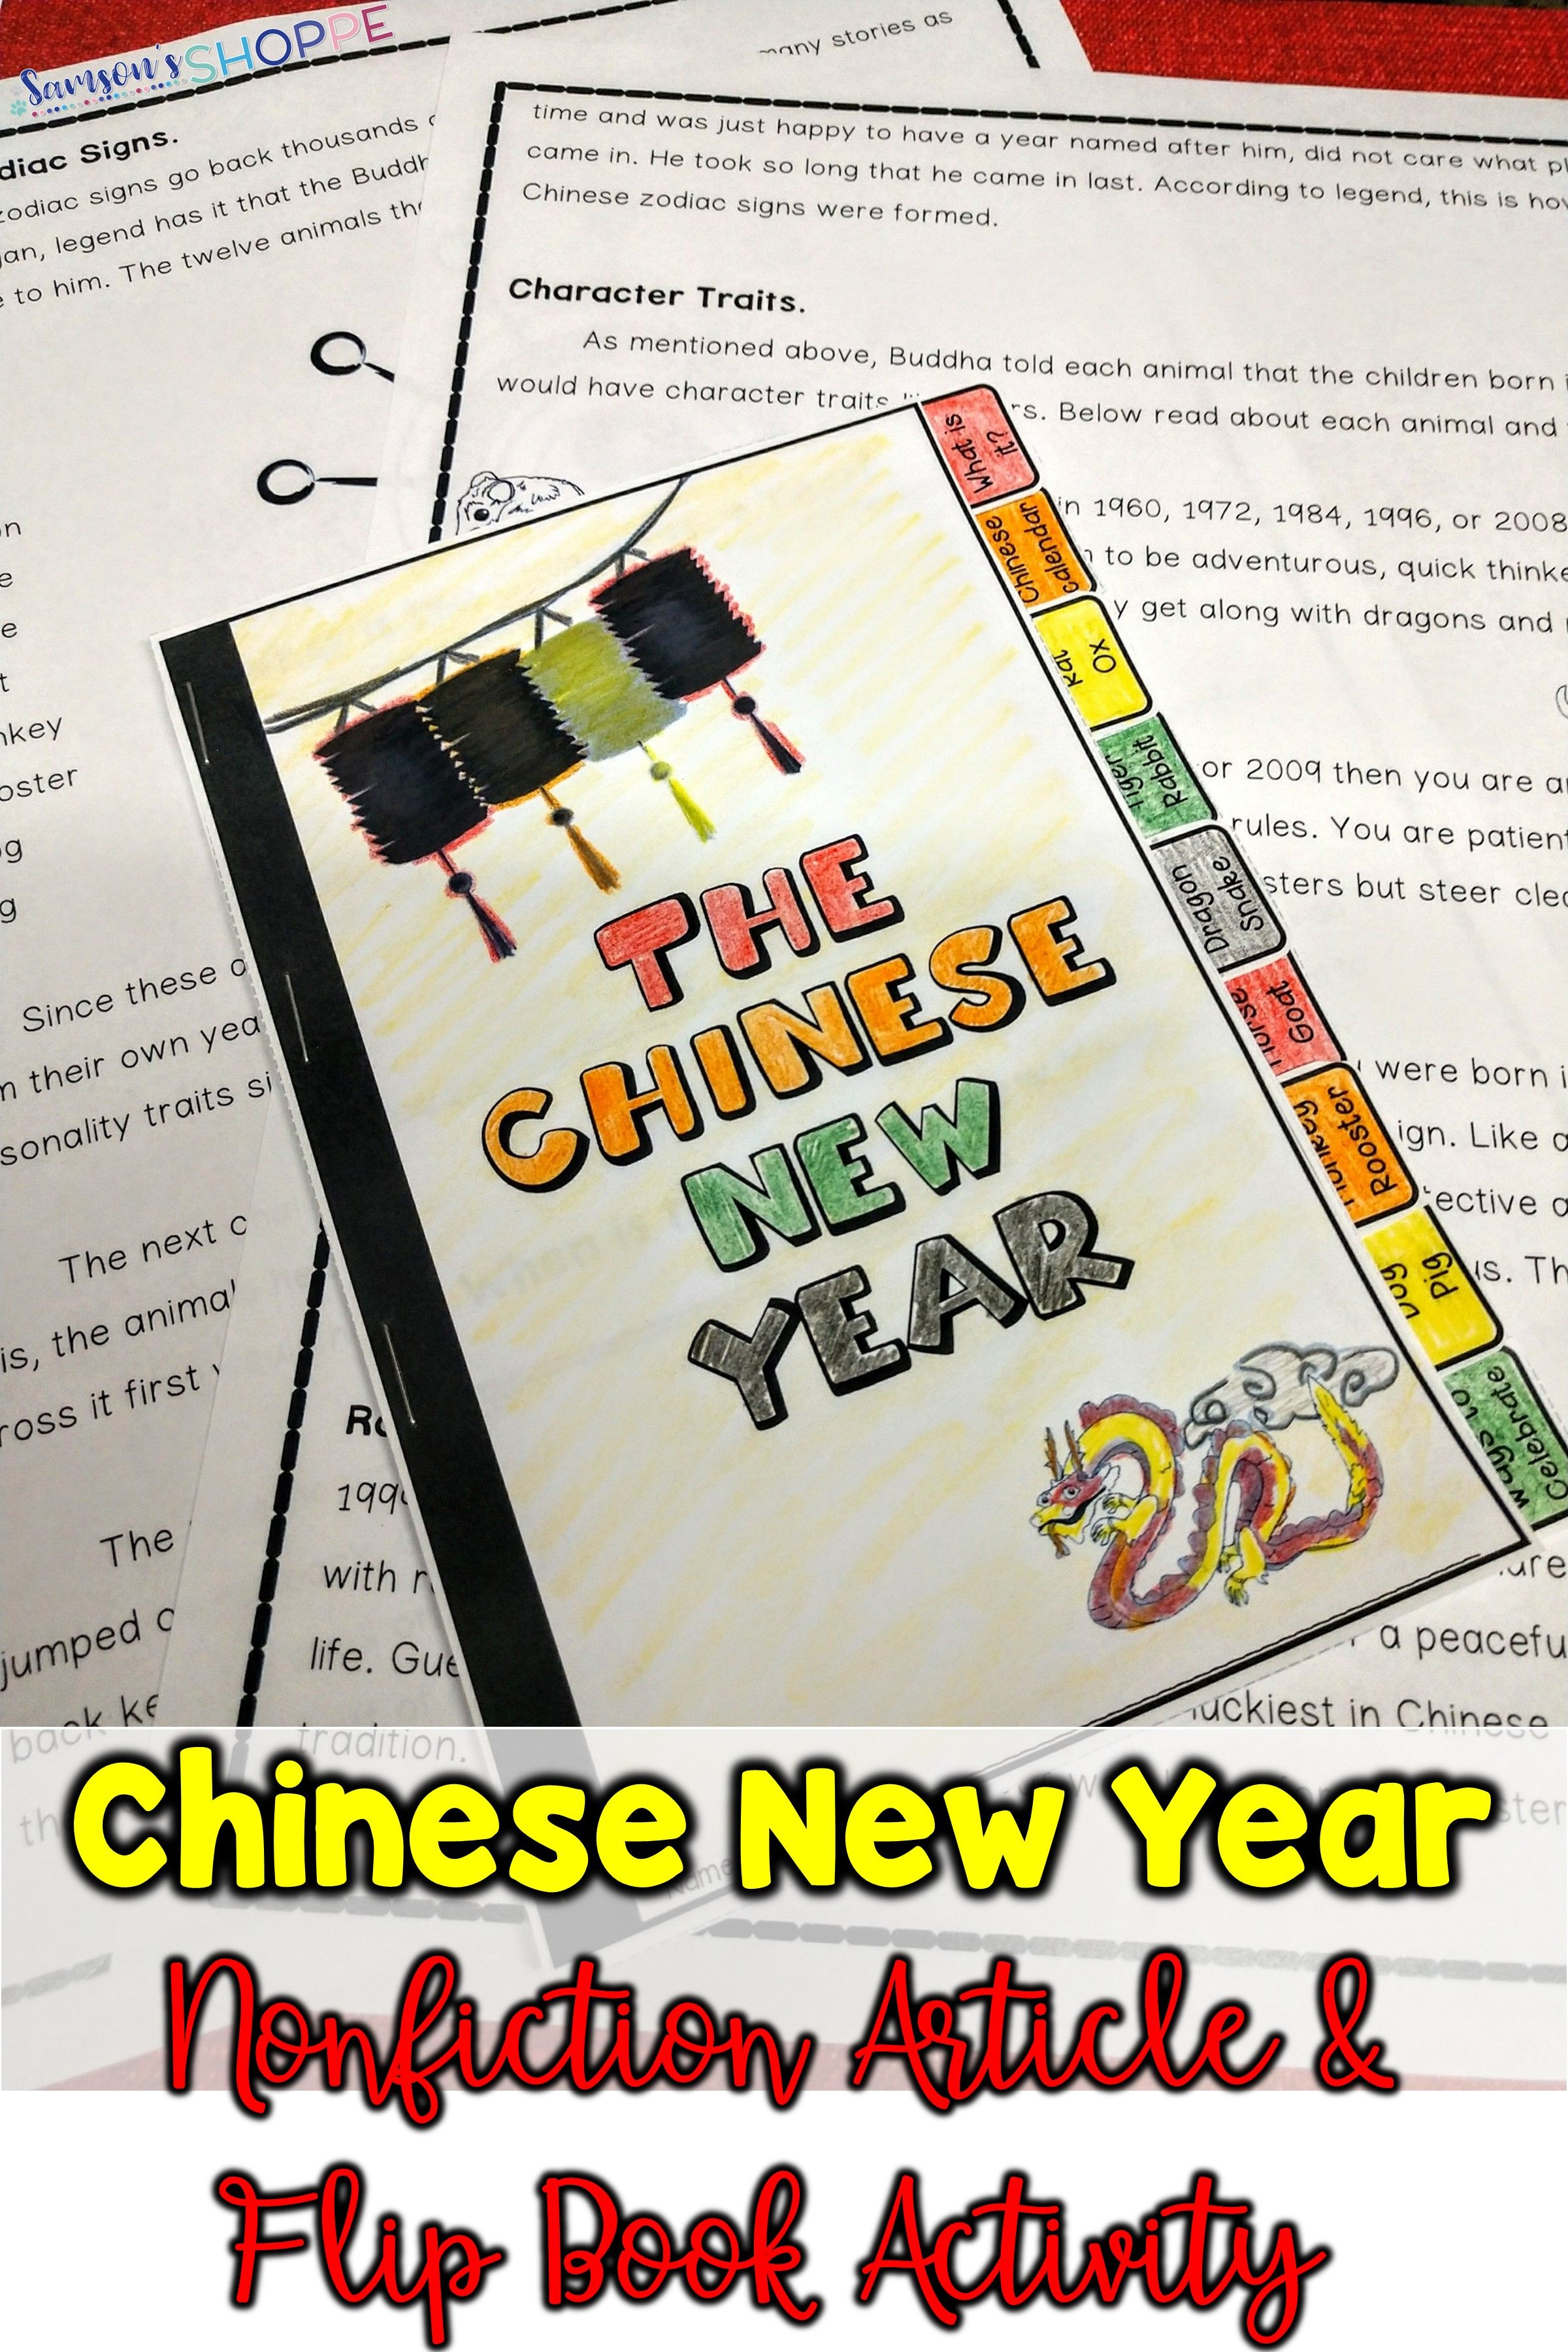 chinese lunar new year 2019 article and flip book activity middle school science english. Black Bedroom Furniture Sets. Home Design Ideas